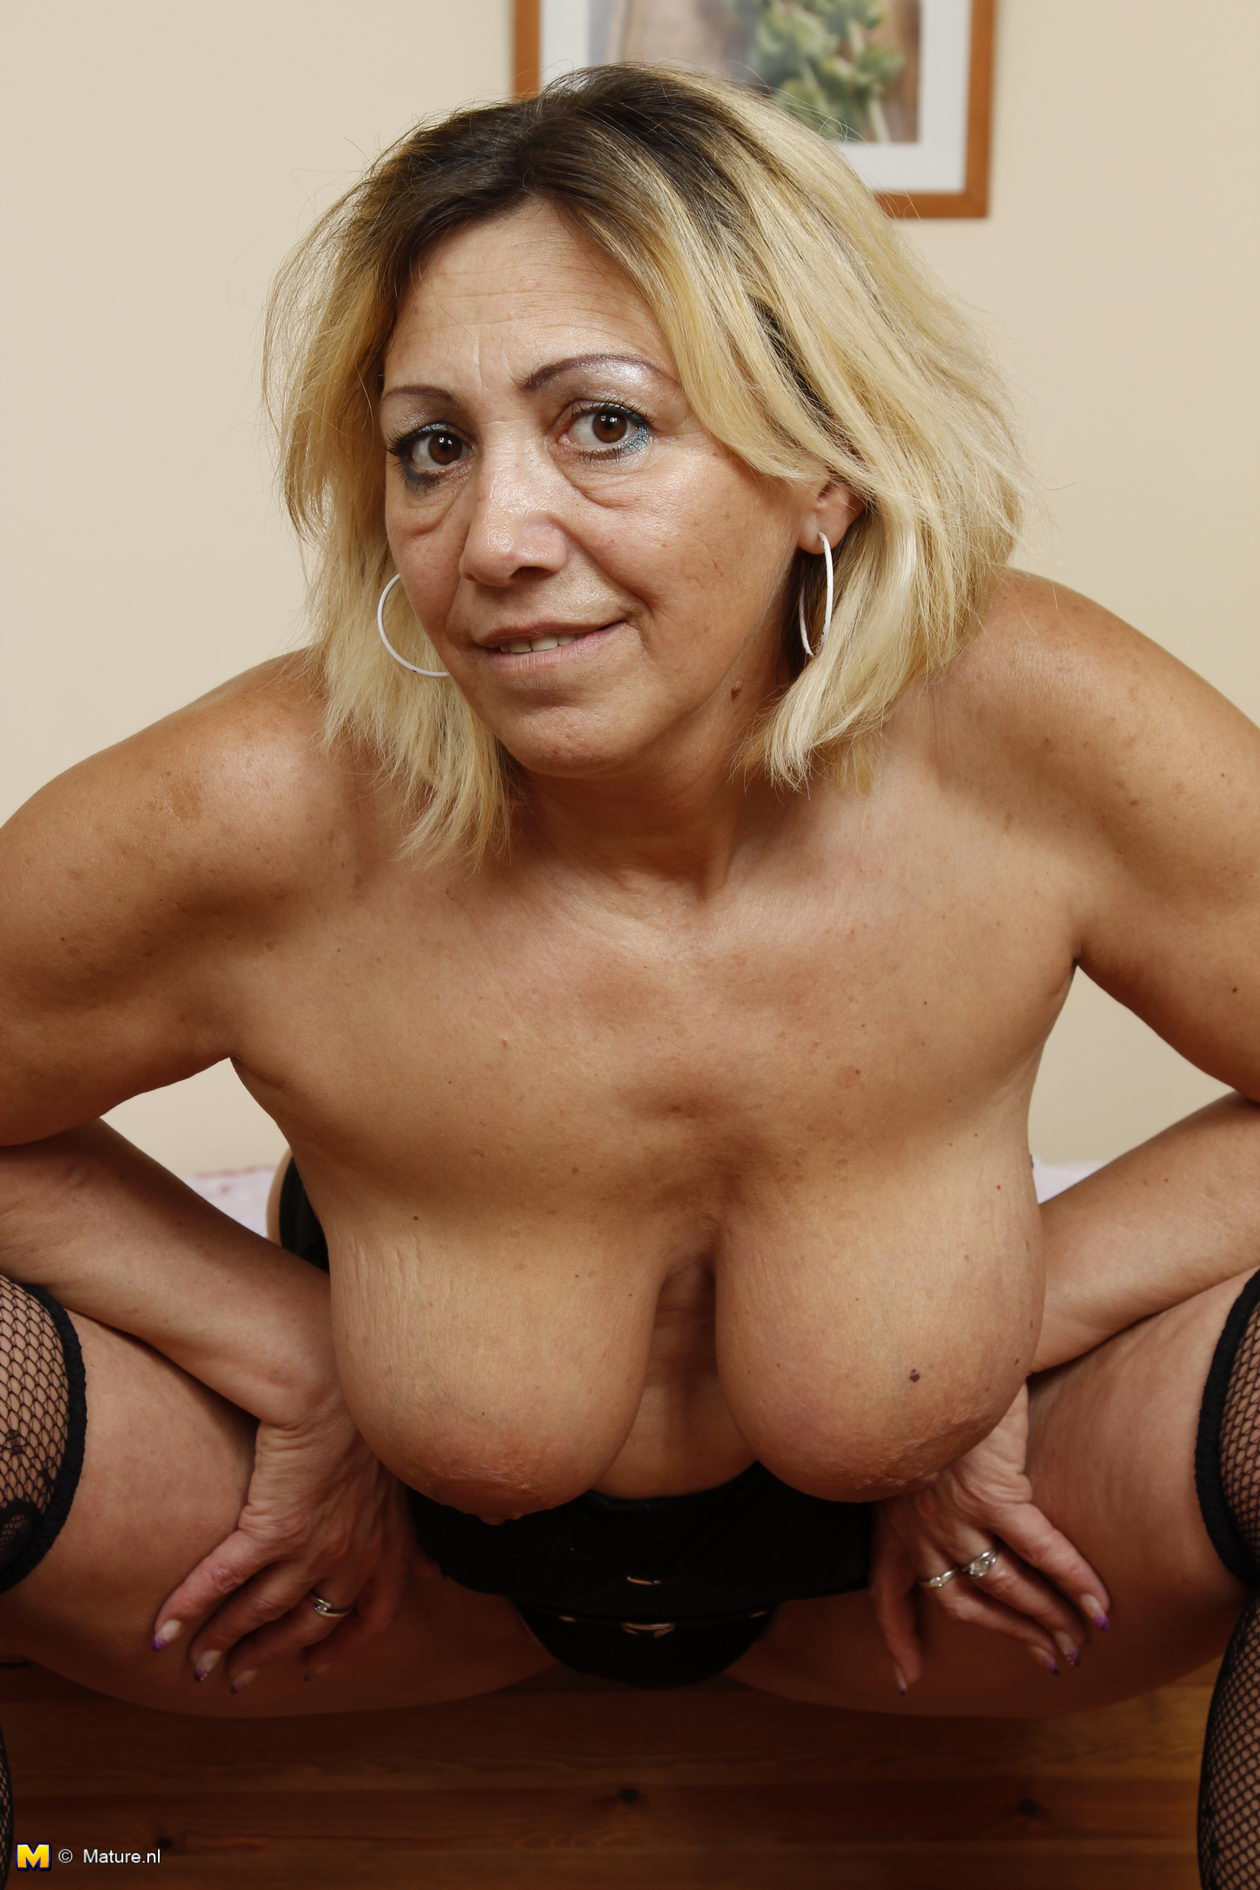 70 old german granny full naked with small tits 7